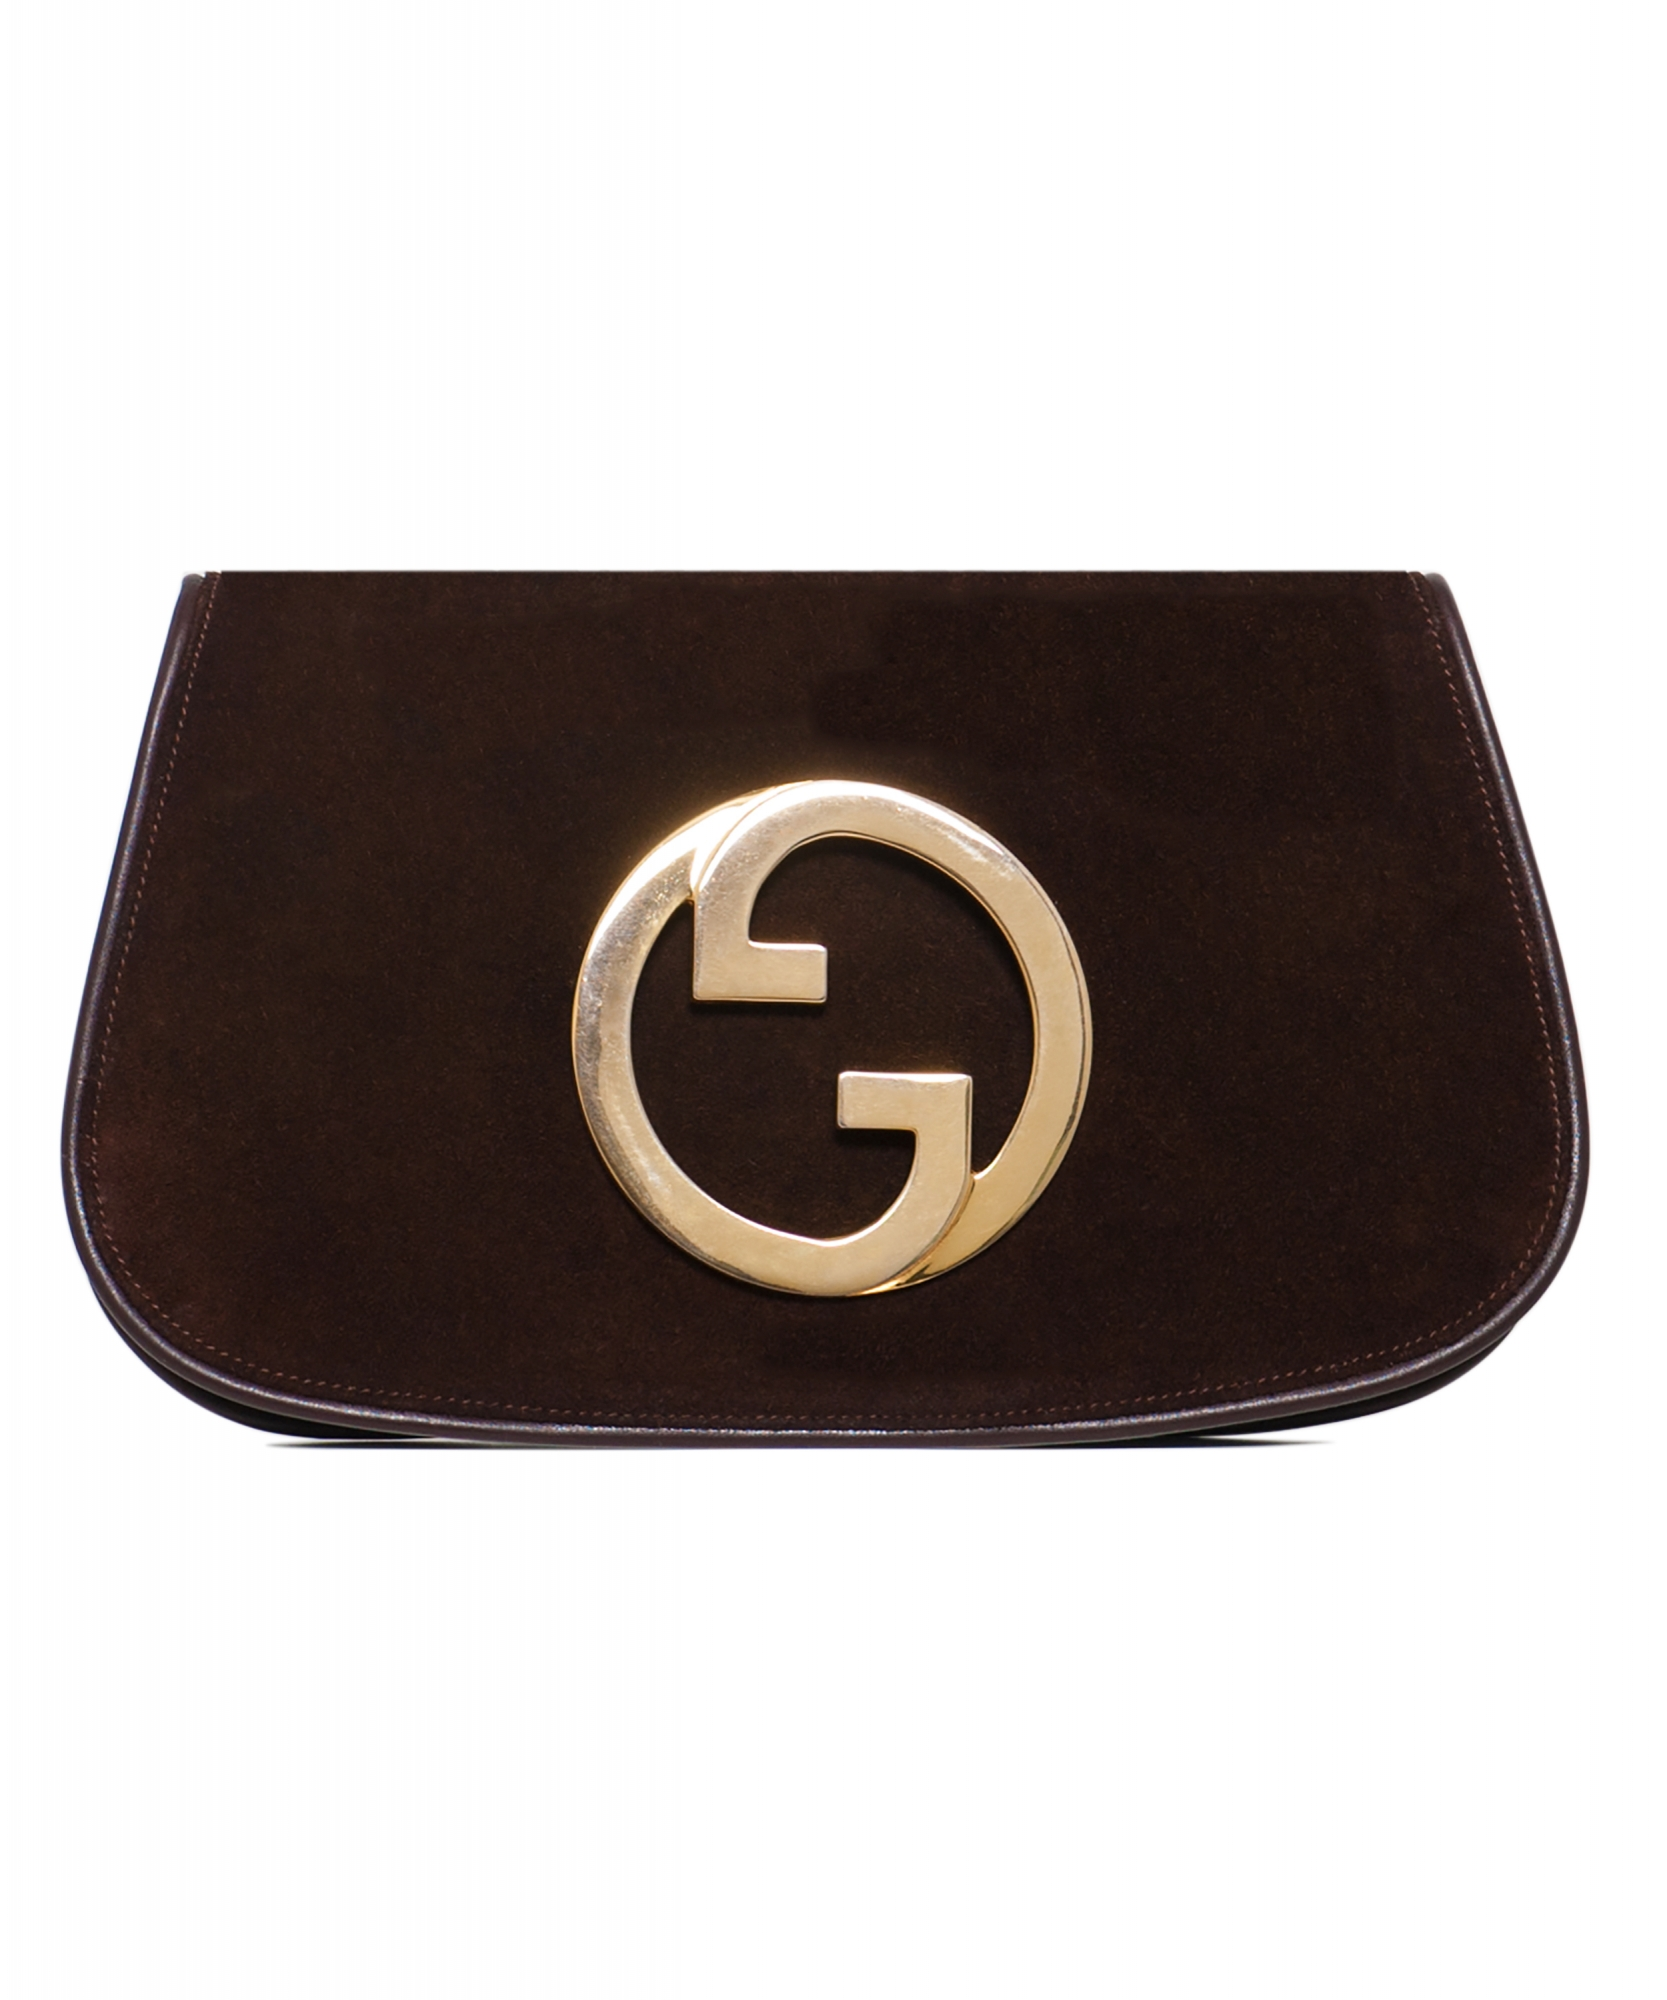 d3eb2558433567 Vintage Gucci Brown Suede Blondie Clutch | La Doyenne